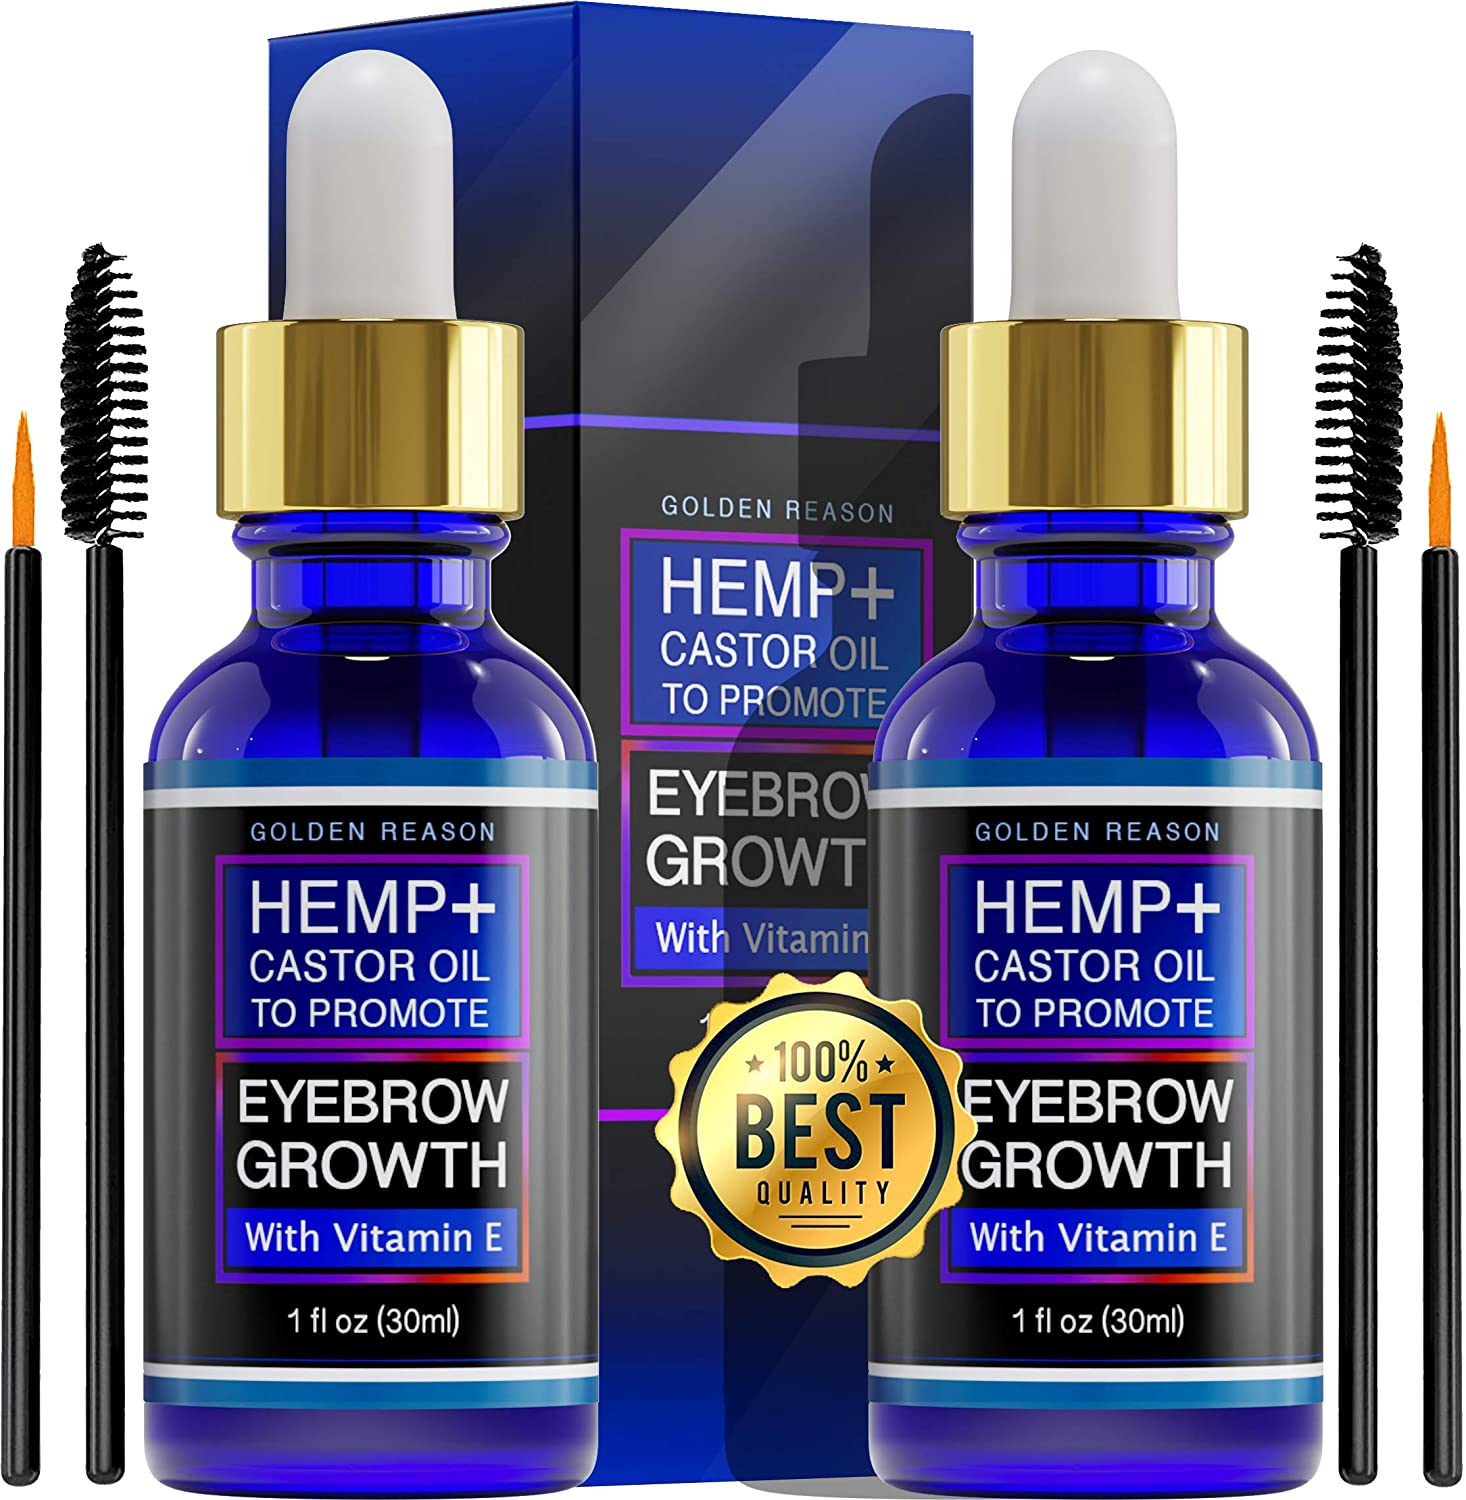 Max 90% OFF low-pricing Hair and Eyebrow grows oil. Hemp + castor promote to gr oil hair